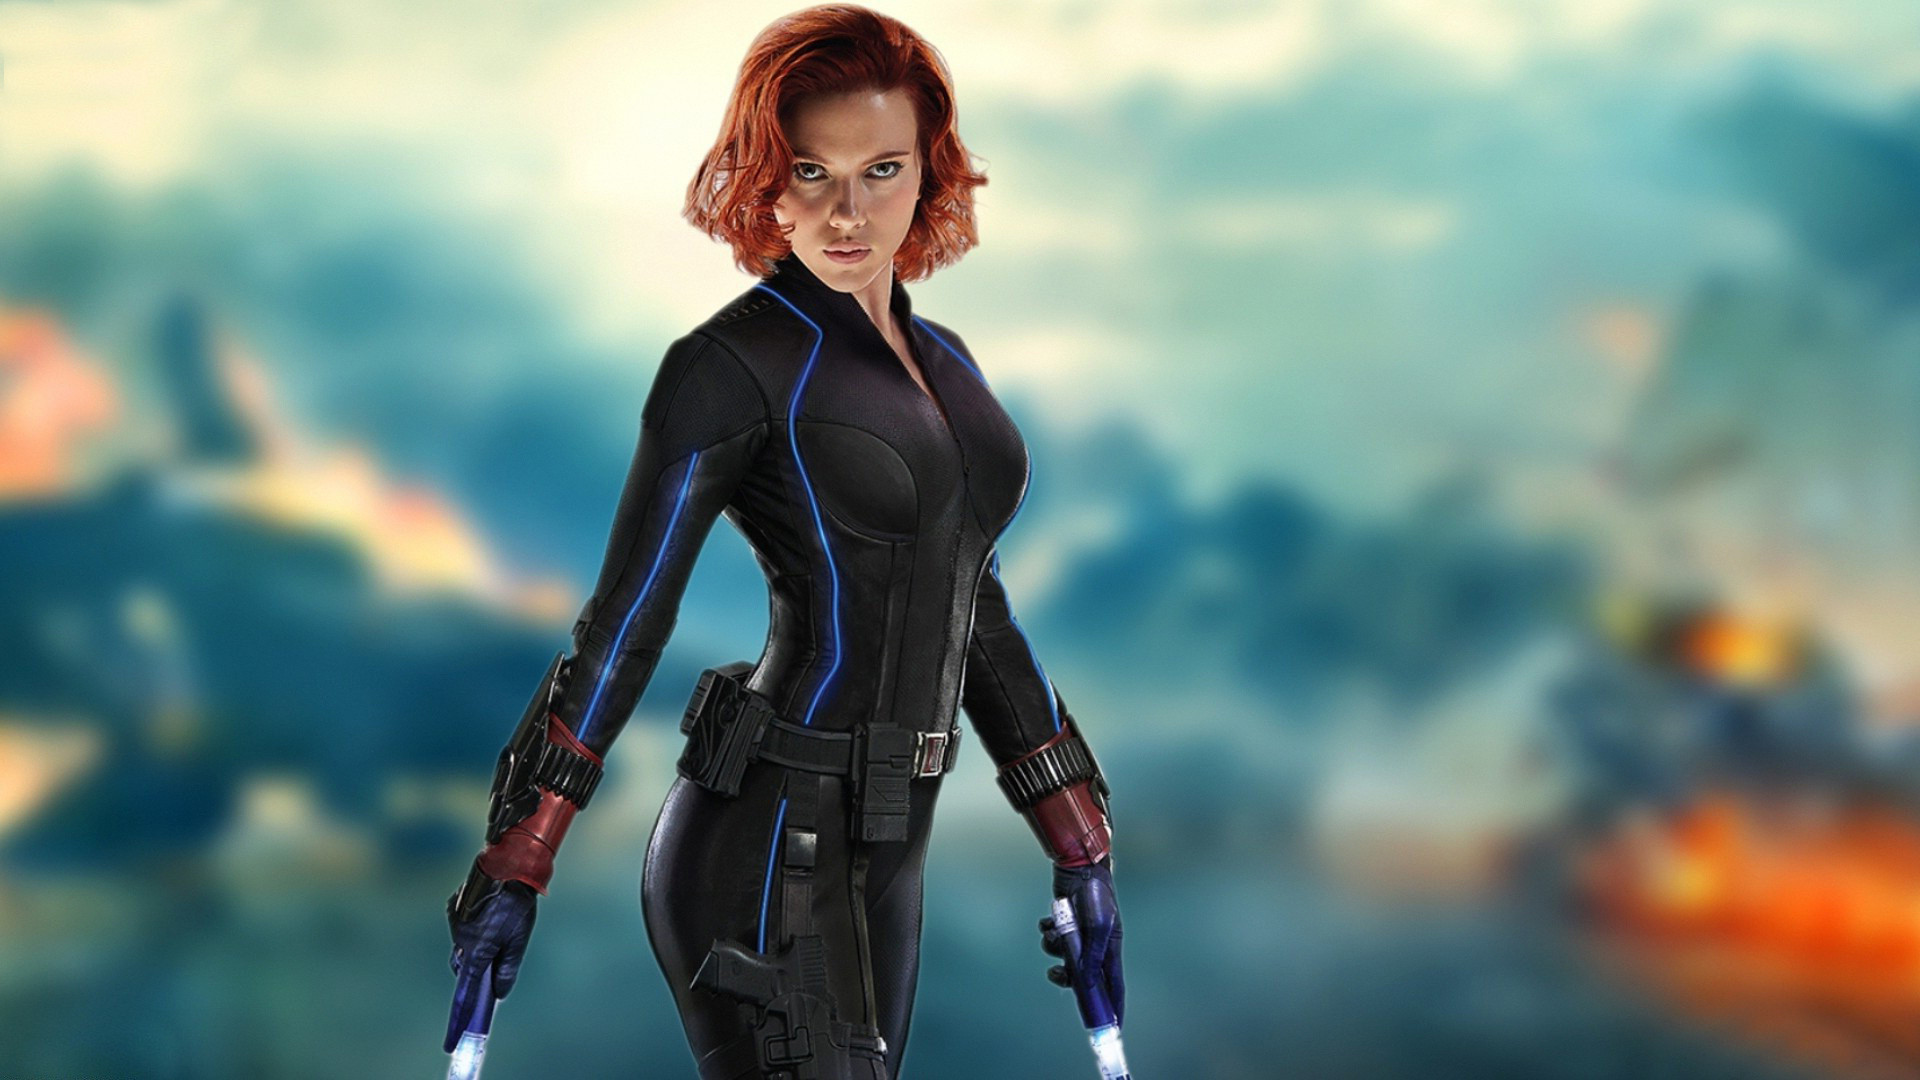 Scarlett Johansson Wallpaper: Scarlett Johansson Black Widow Wallpaper ·① WallpaperTag